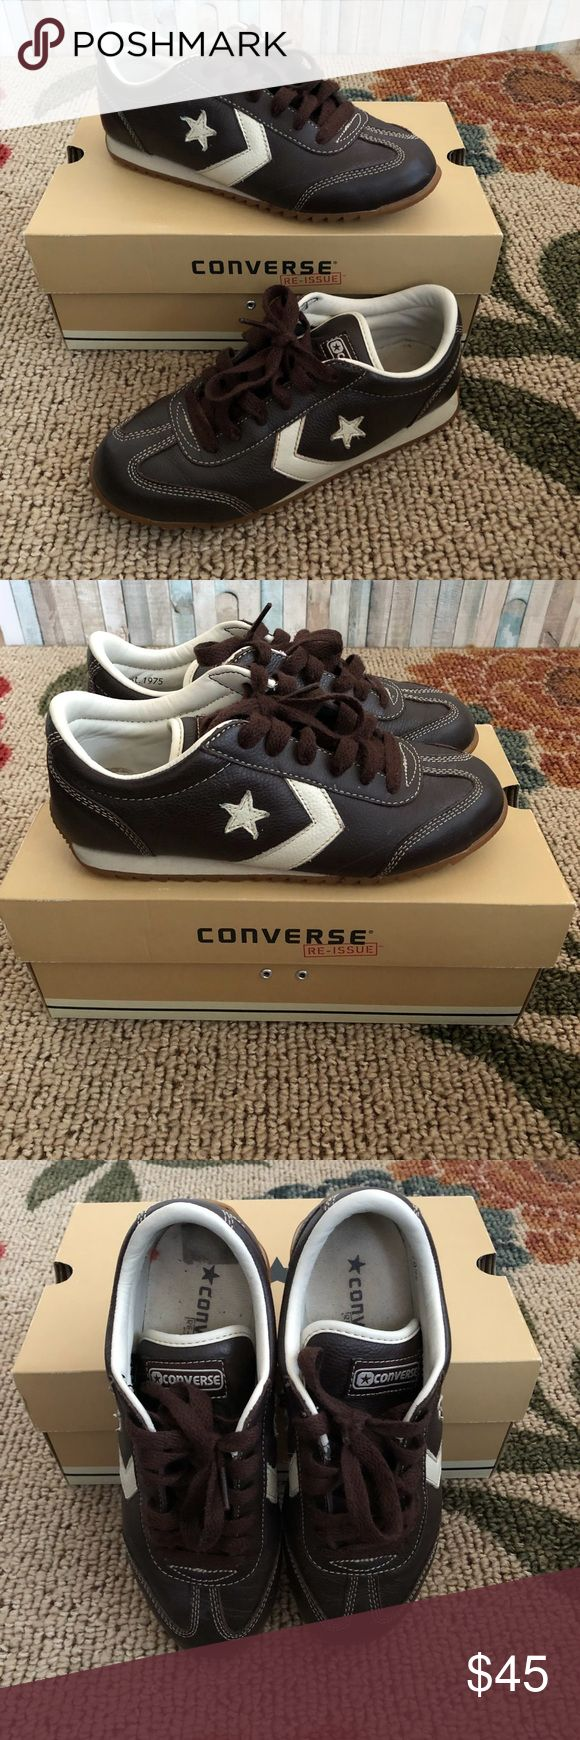 🍫 Chocolate Converse Leather Trainers - Great Condition  - Comes with original box.  US Women's Size: 7.5 Converse Shoes Sneakers